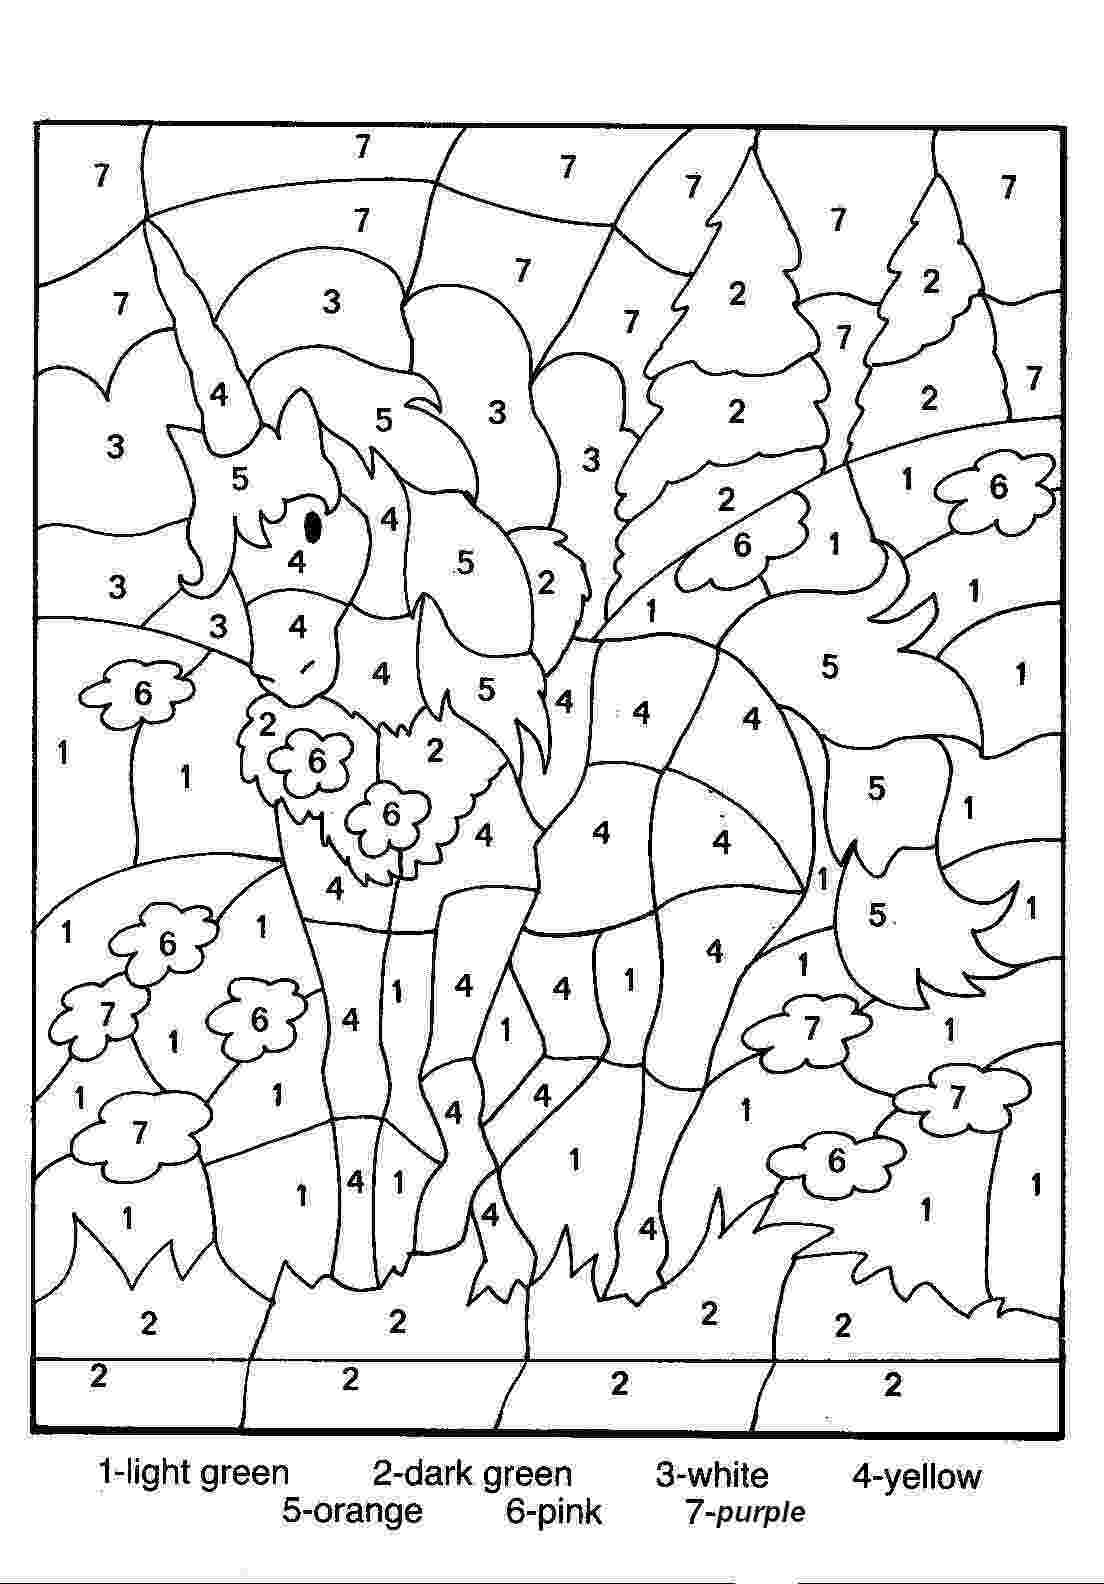 free printable color by number free color by number printablesgreat for kids of all number by color free printable